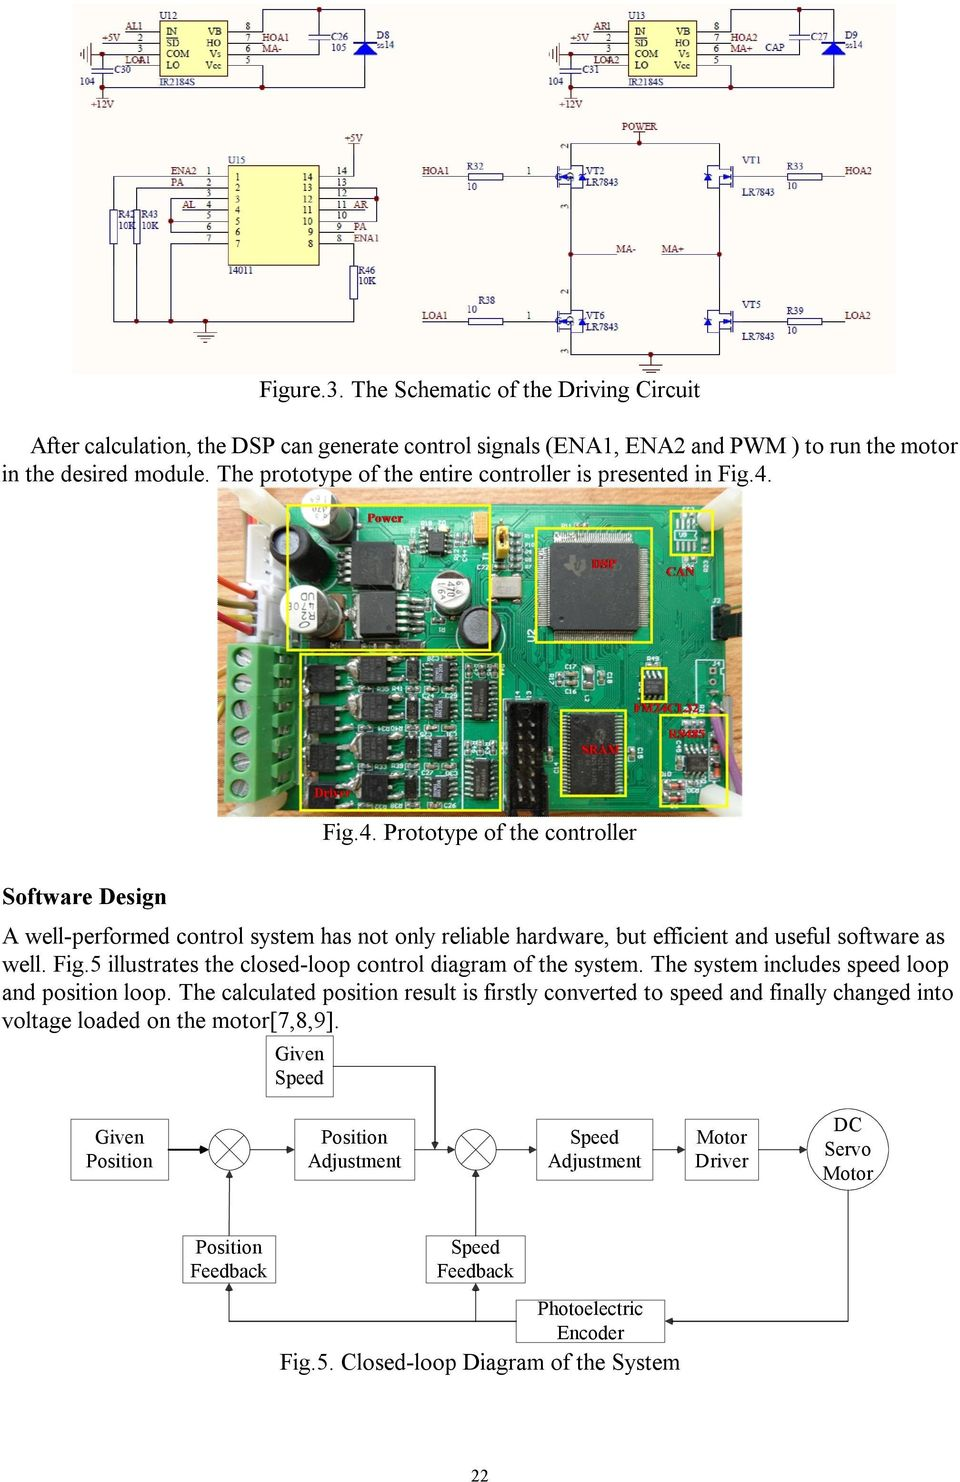 The Design Of Dsp Controller Based Dc Servo Motor Control System Pdf Figure 4 Closed Loop Brushless Circuit With Fig4 Prototype Software A Well Performed